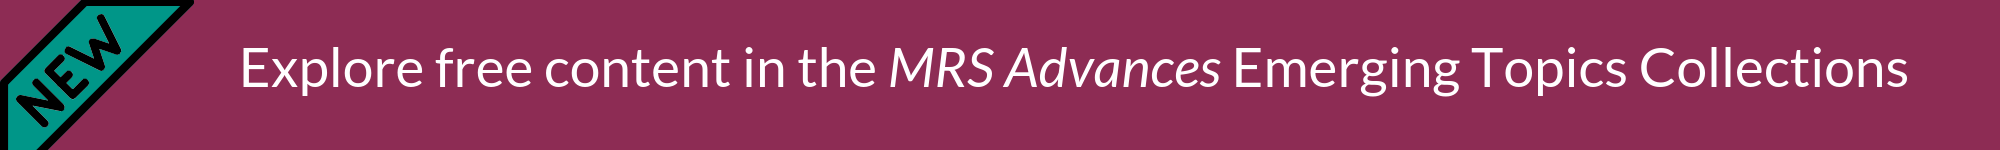 MRS Advances Emerging Topics